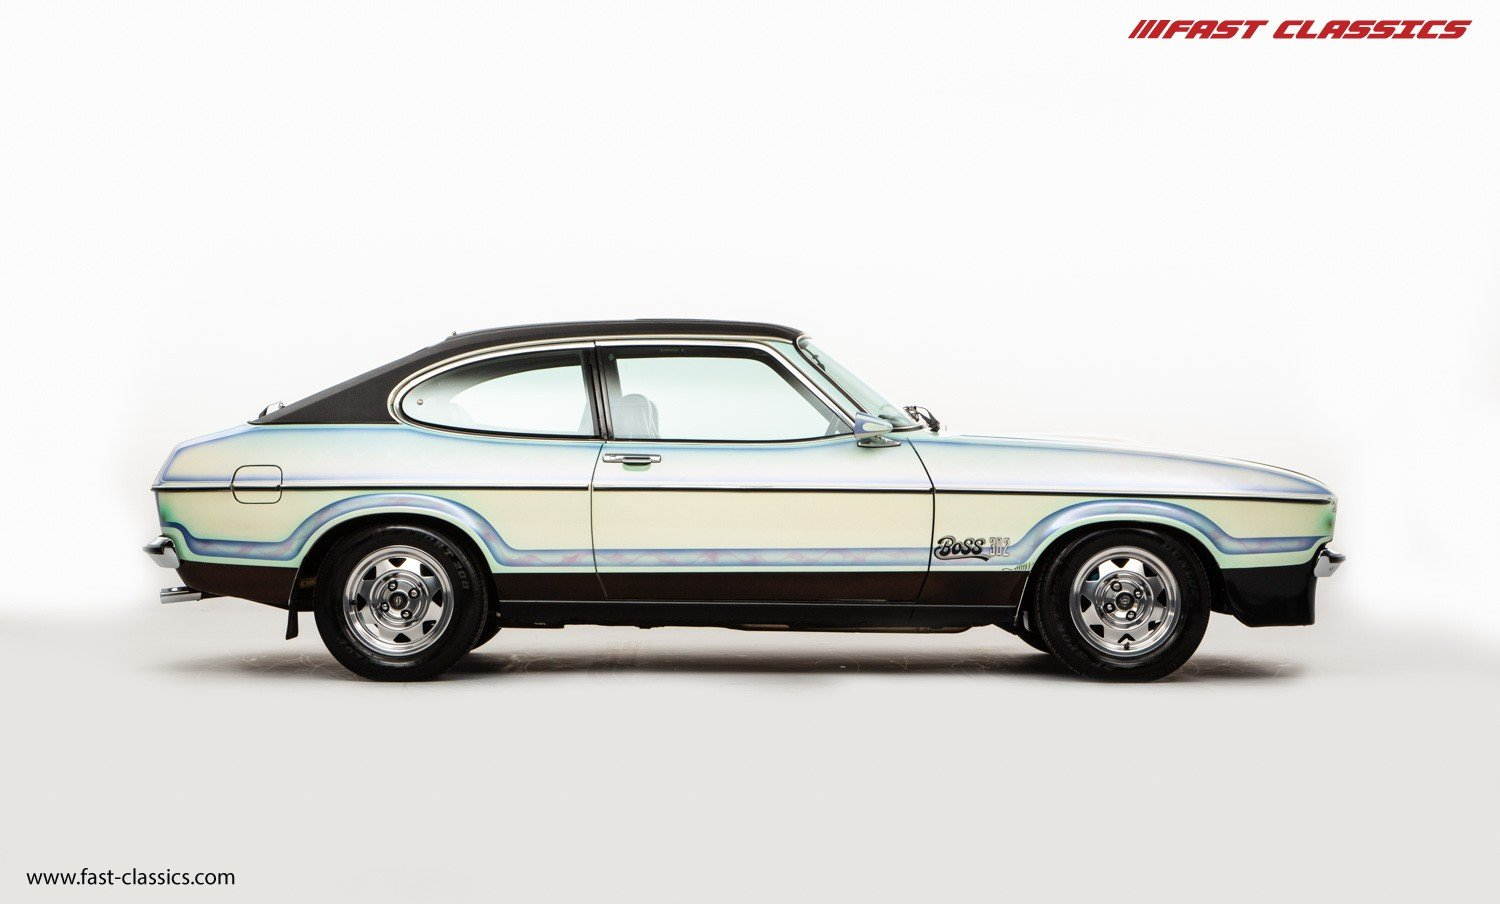 1974 FORD CAPRI STAMPEDE // 1 OF 1 // BOSS 302 V8 ENGINE For Sale (picture 1 of 6)